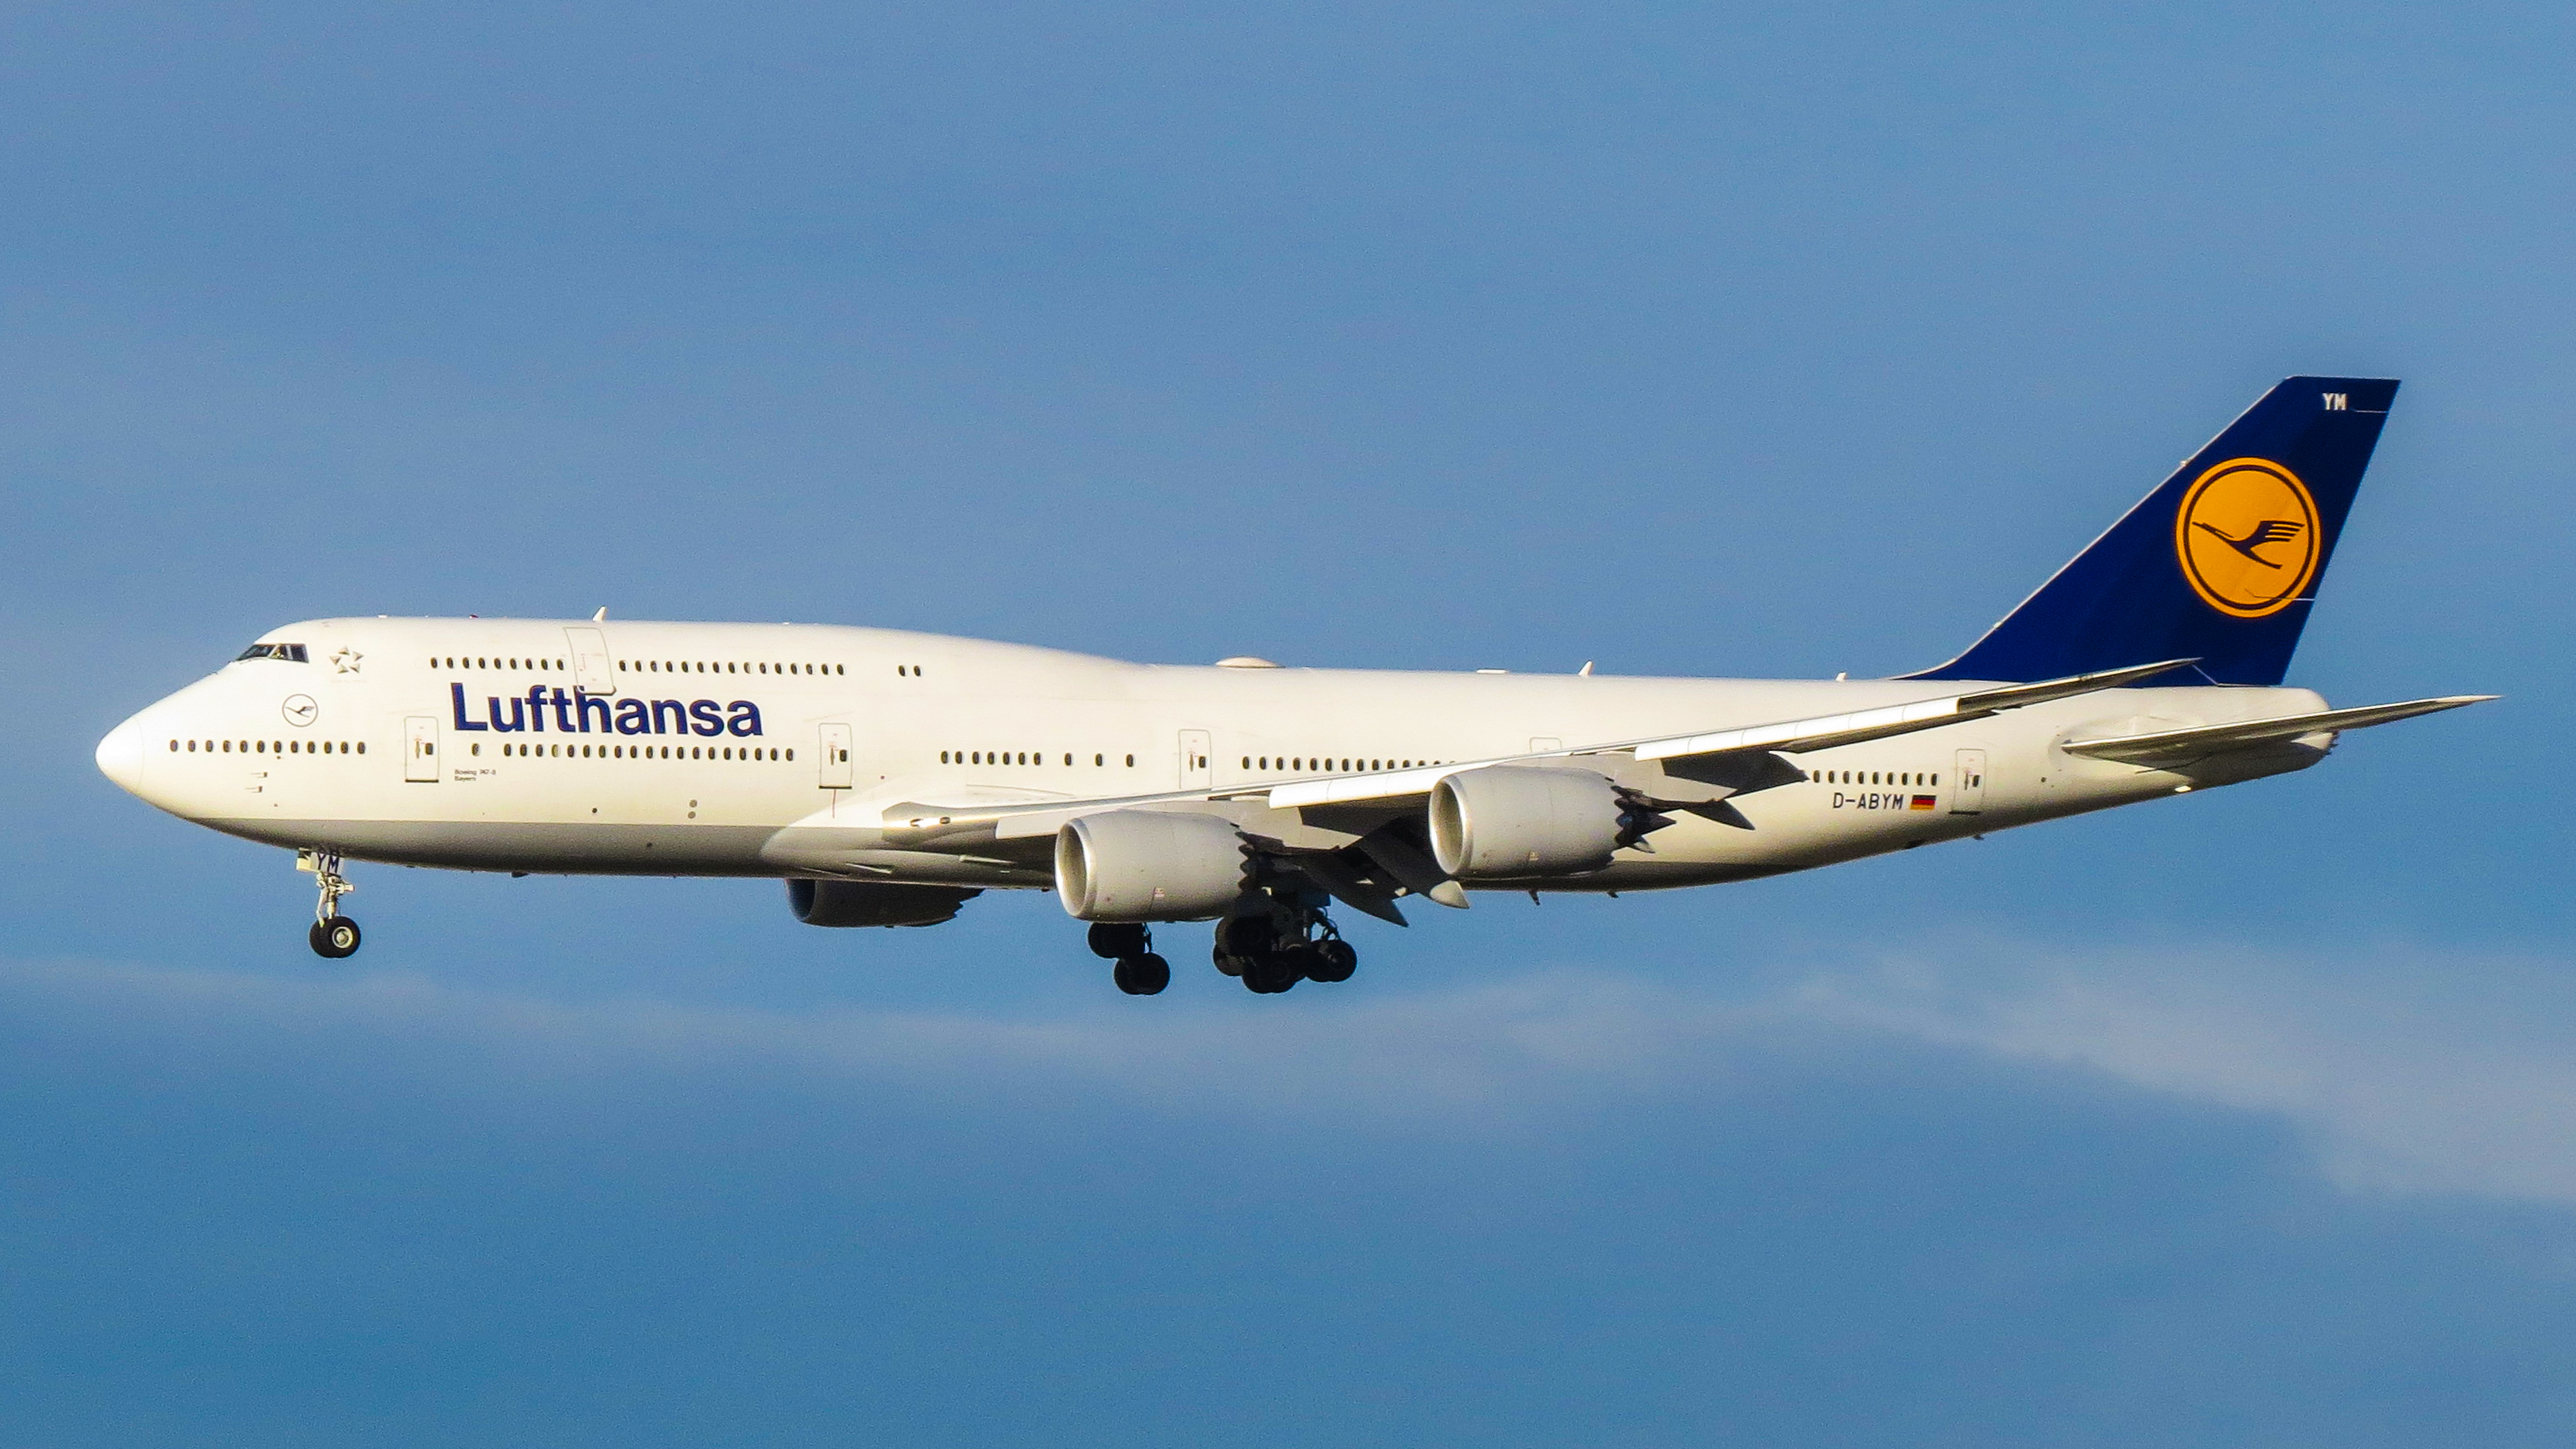 Boeing 747 - Wikiwand